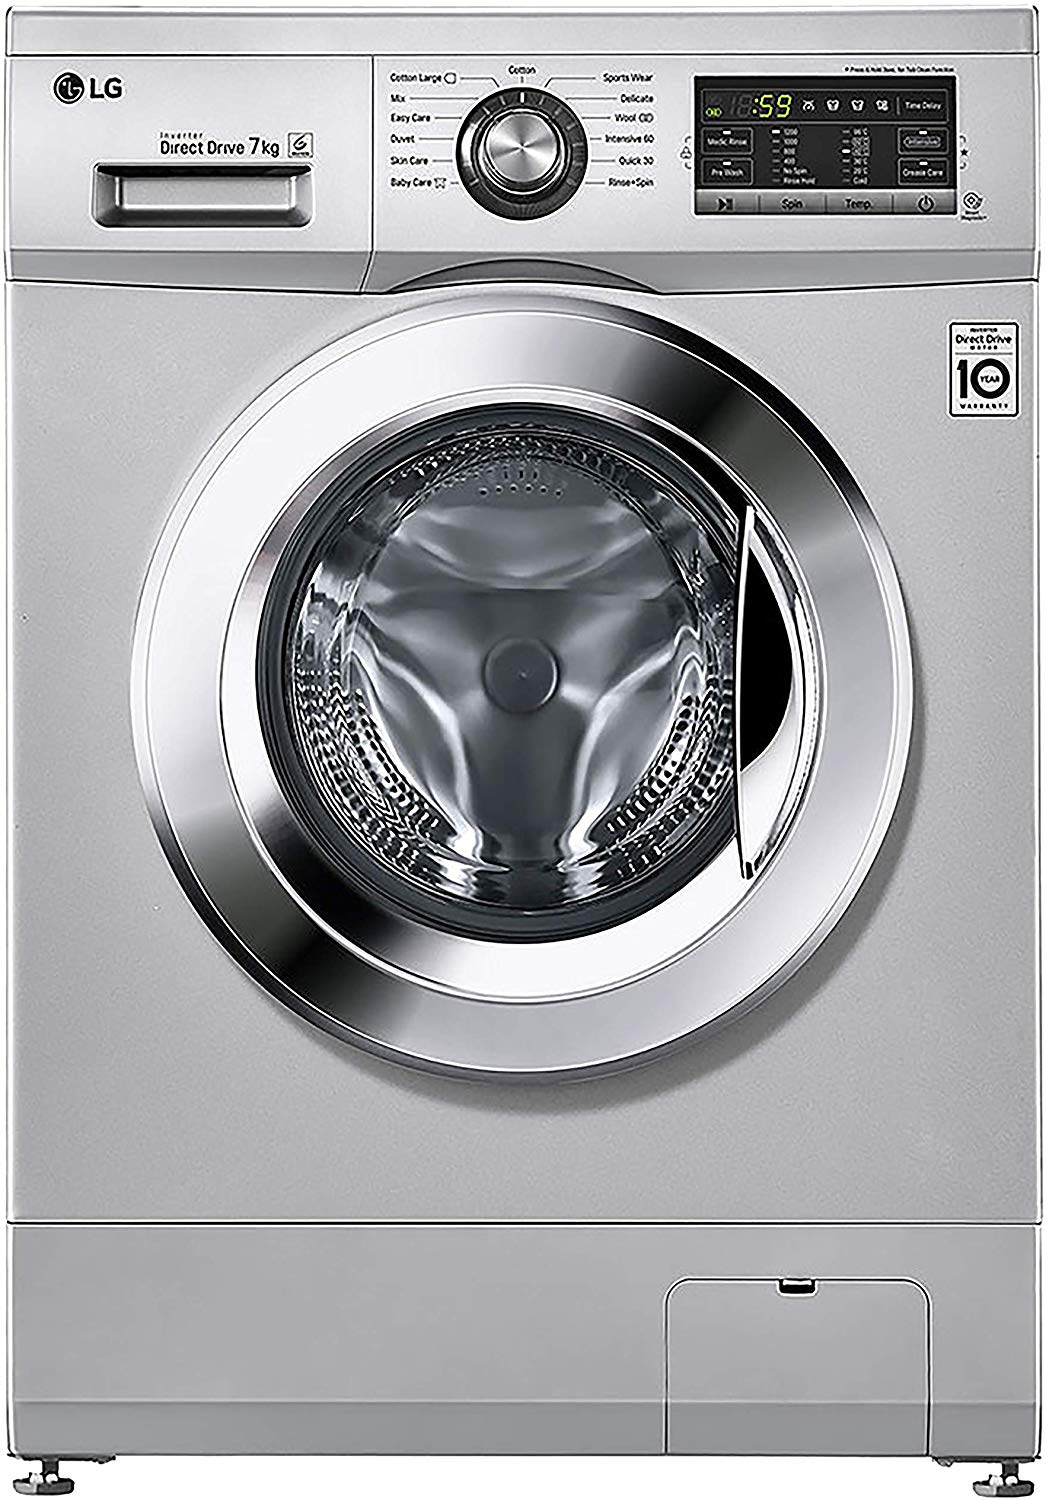 Best LG Washing Machine In India 2020 - EAFT Washing Machine